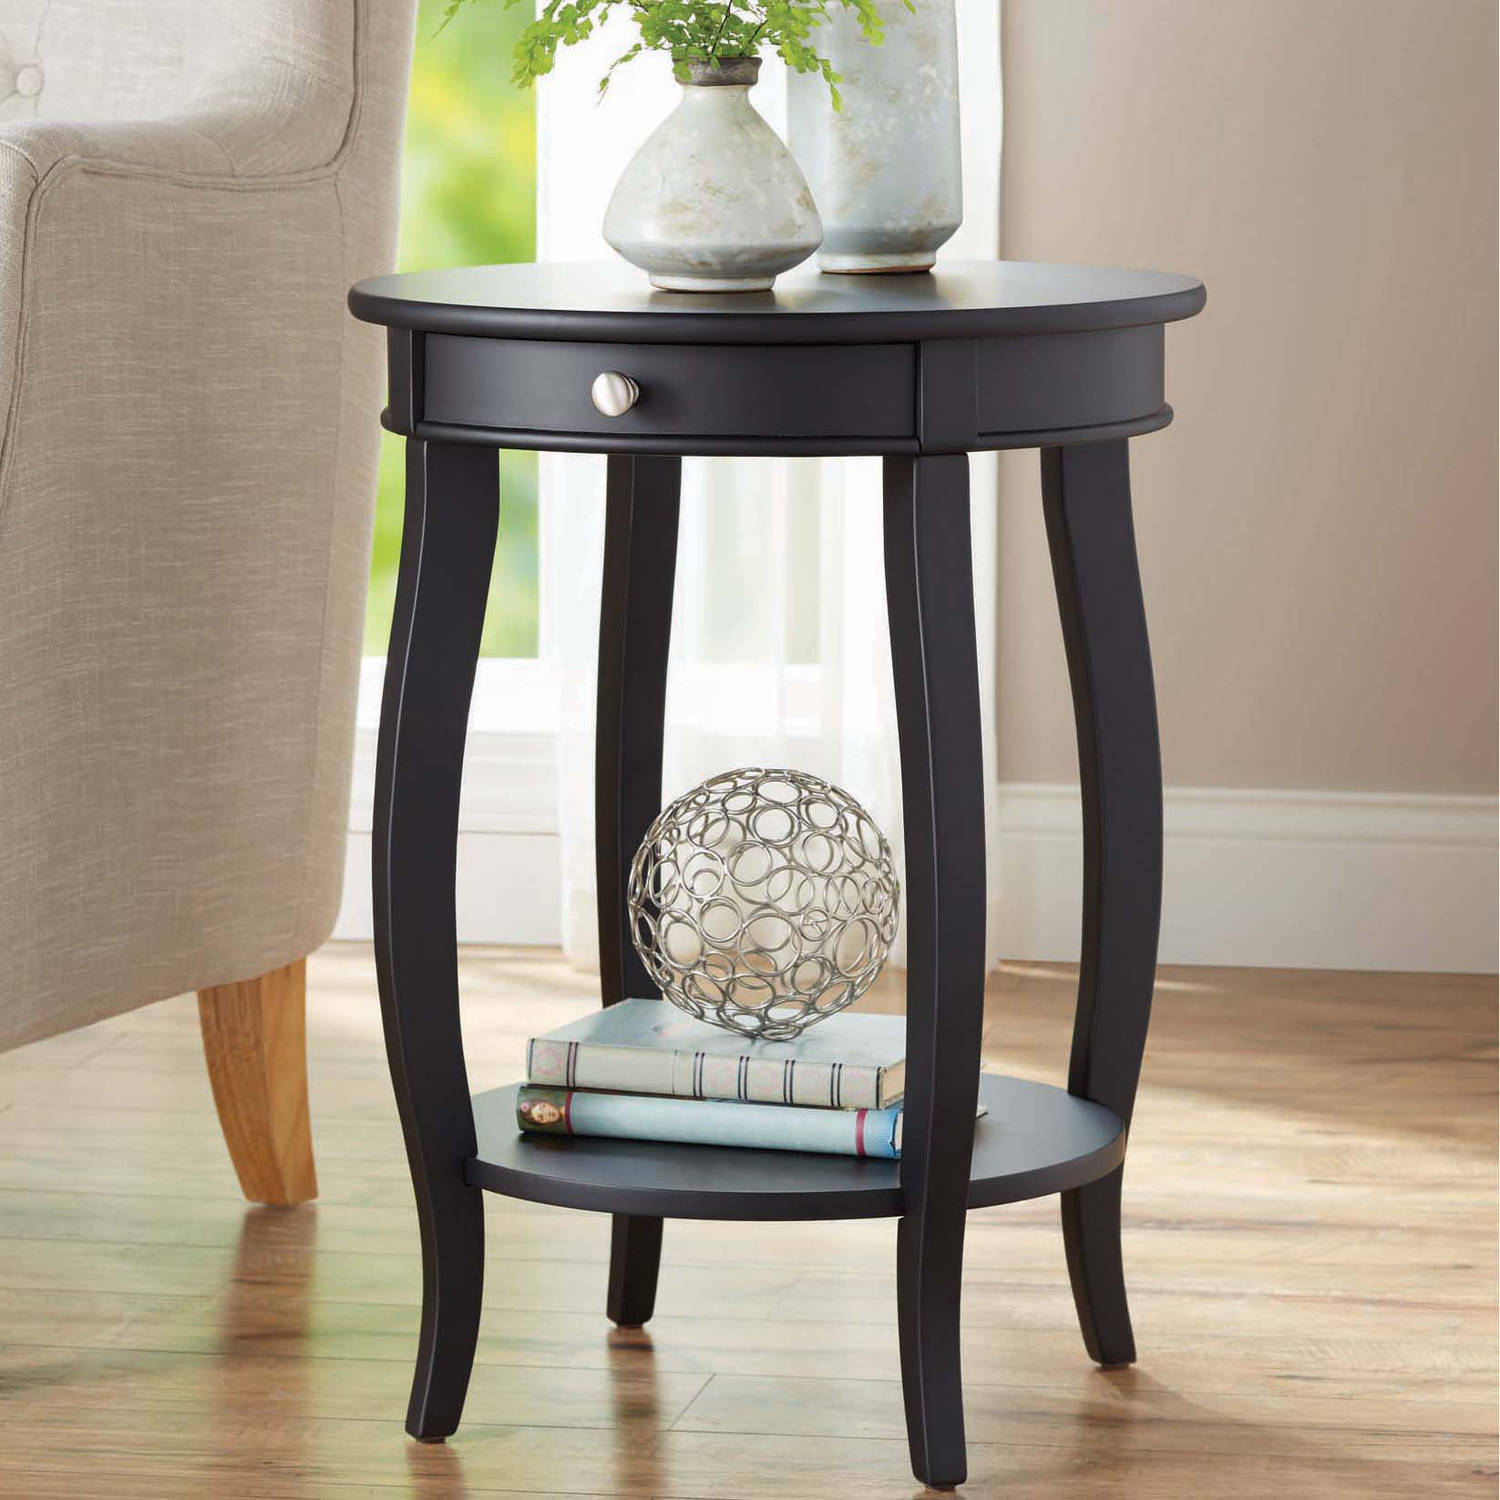 Better Homes & Gardens Round Accent Table with Drawer, Multiple Colors by L. Powell Acquisition Corp.